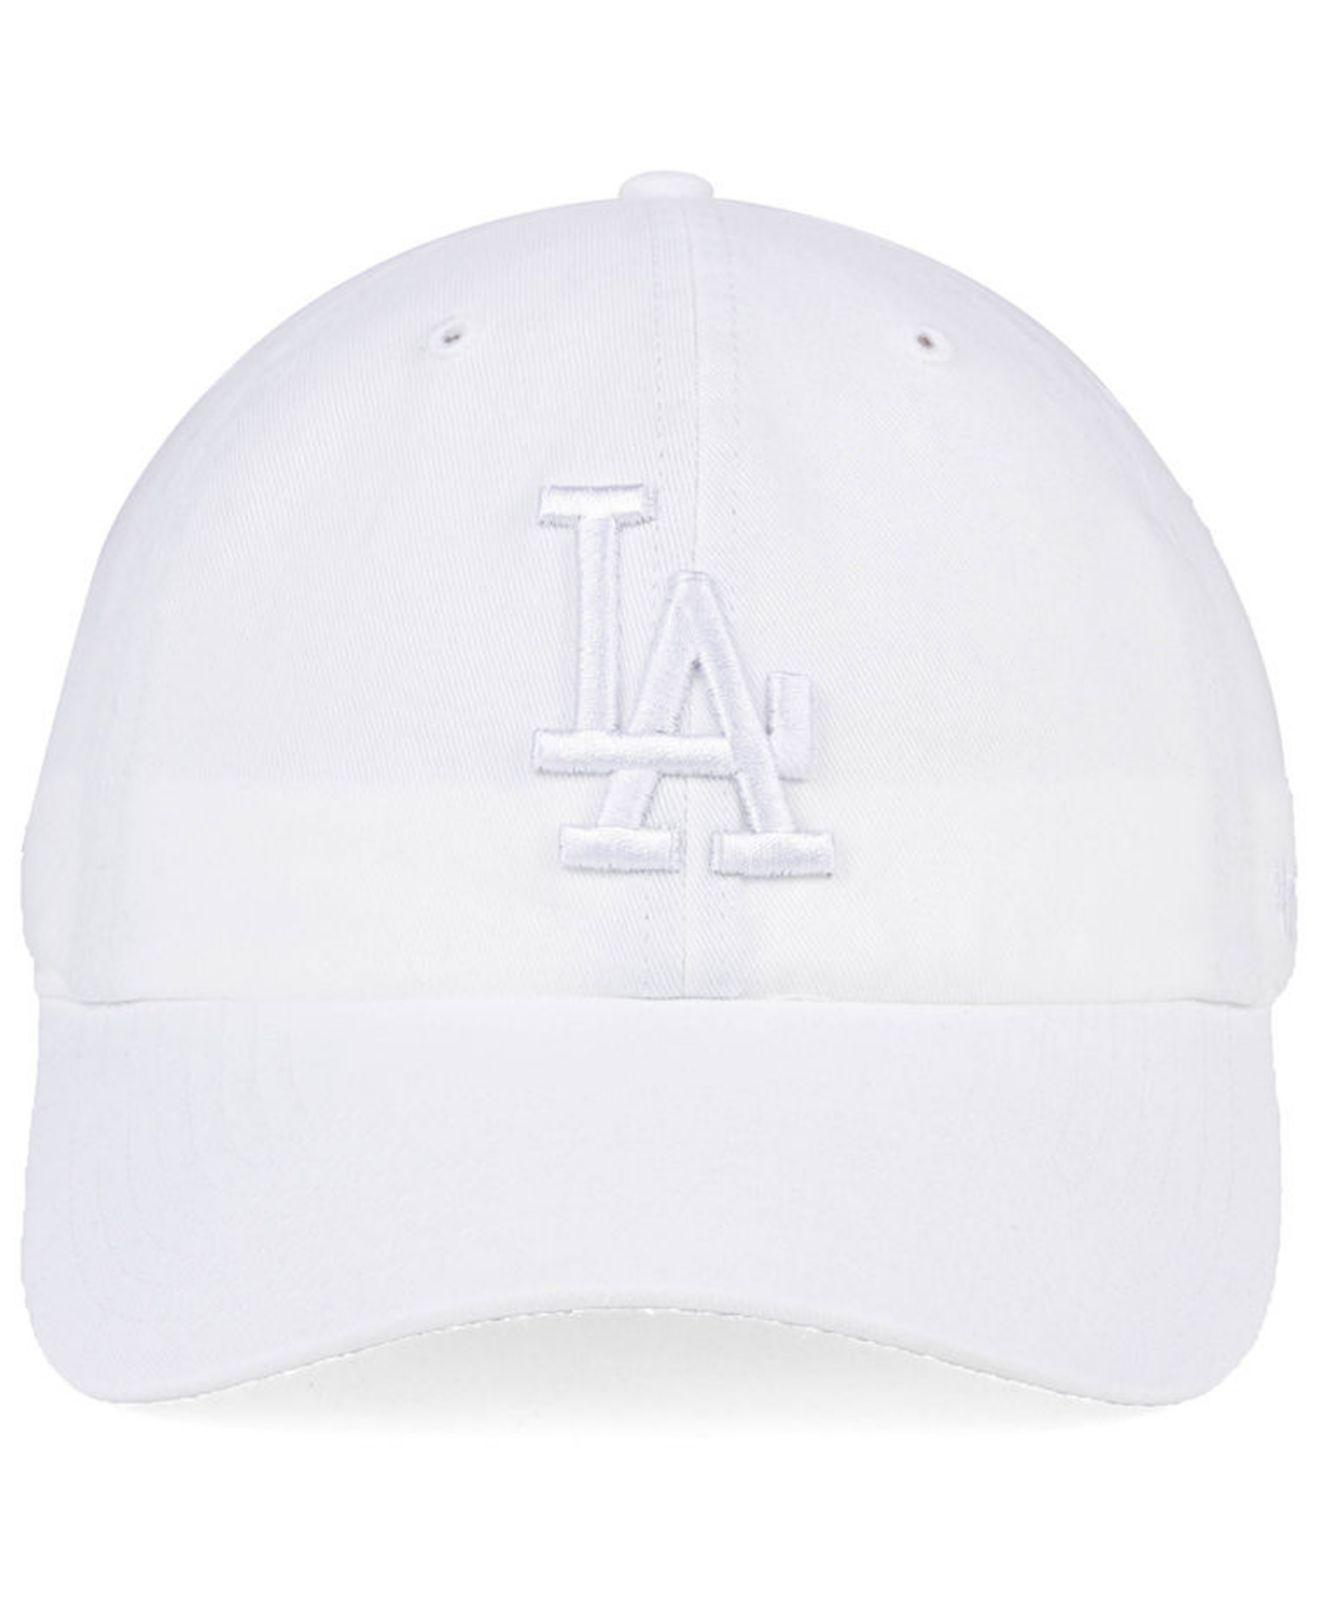 7f0ad717 ... purchase top quality lyst 47 brand los angeles dodgers white white clean  up cap in white